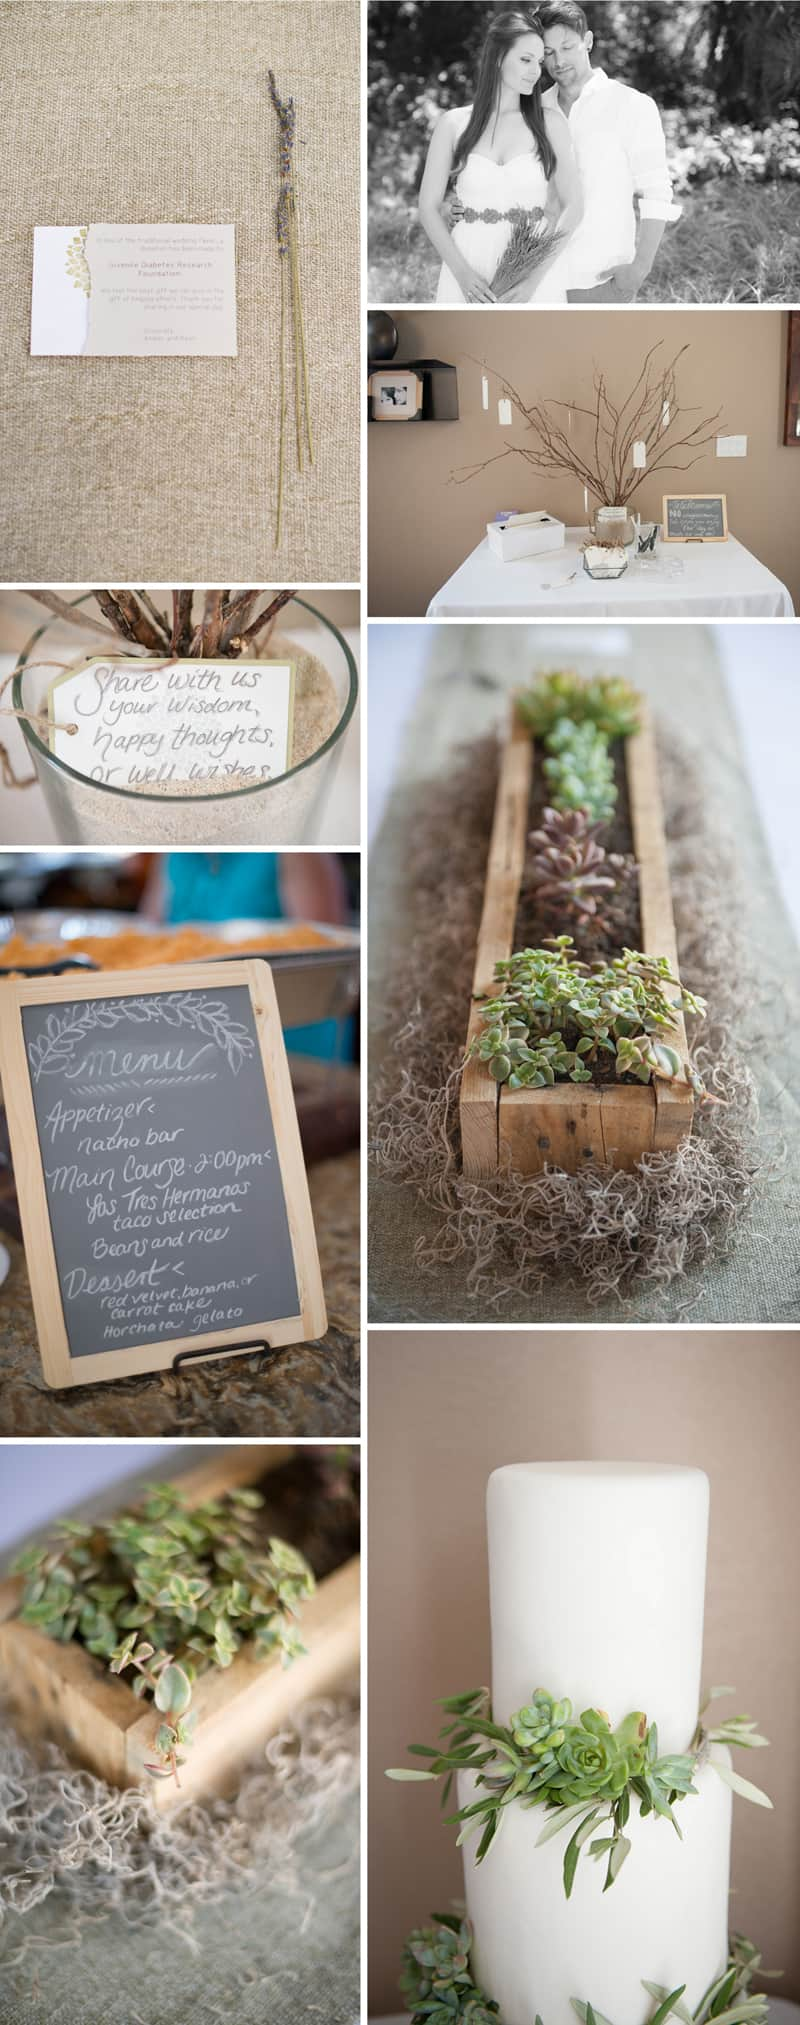 An Intimate Rustic Beach Wedding 5